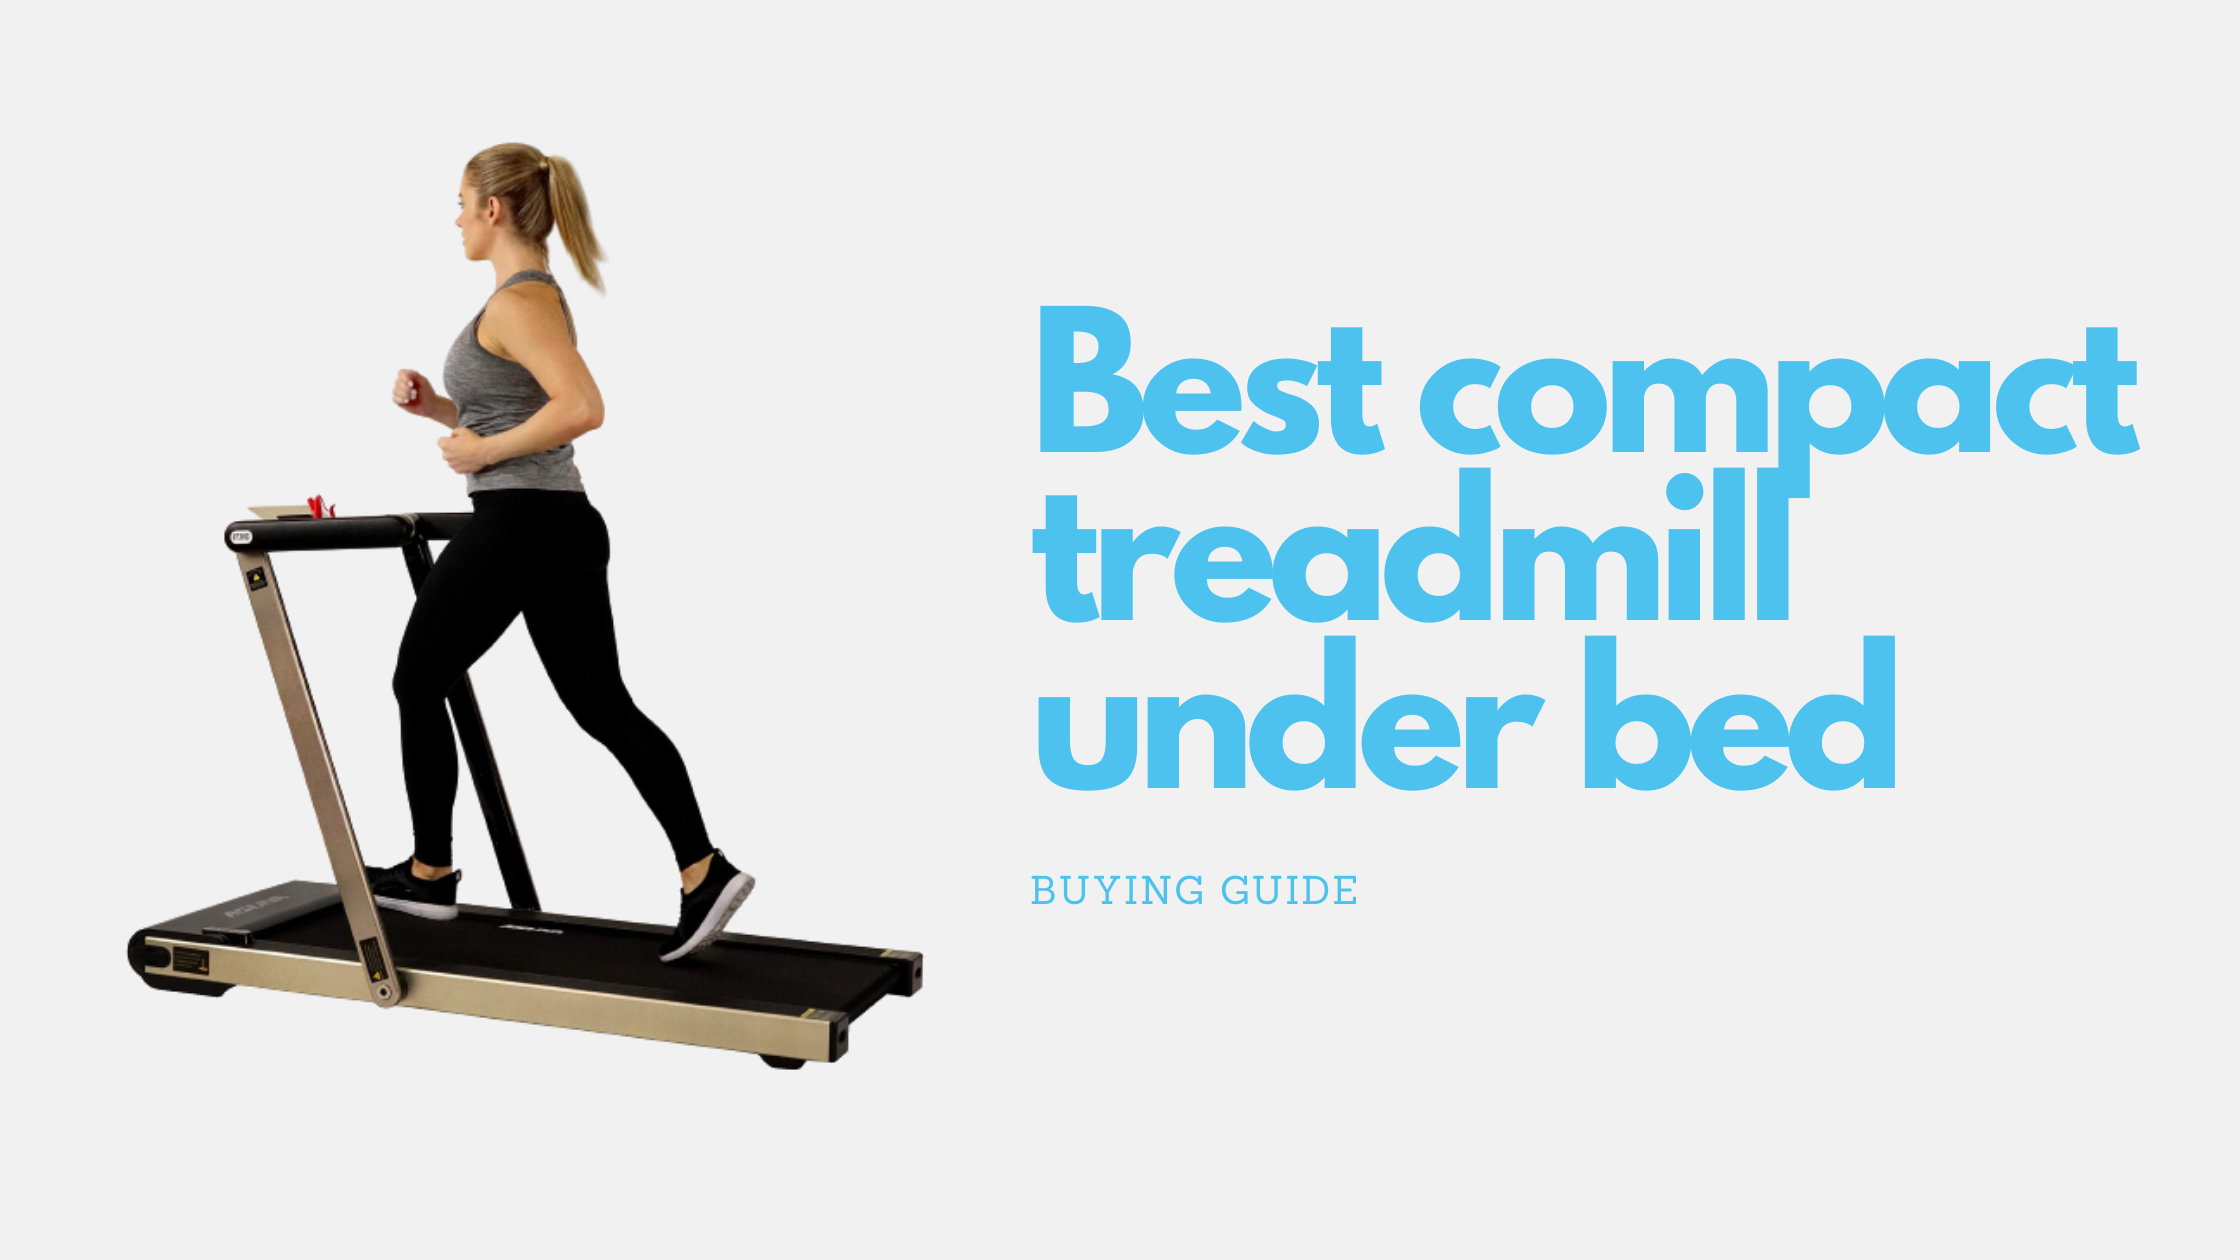 13 Best compact treadmill under bed